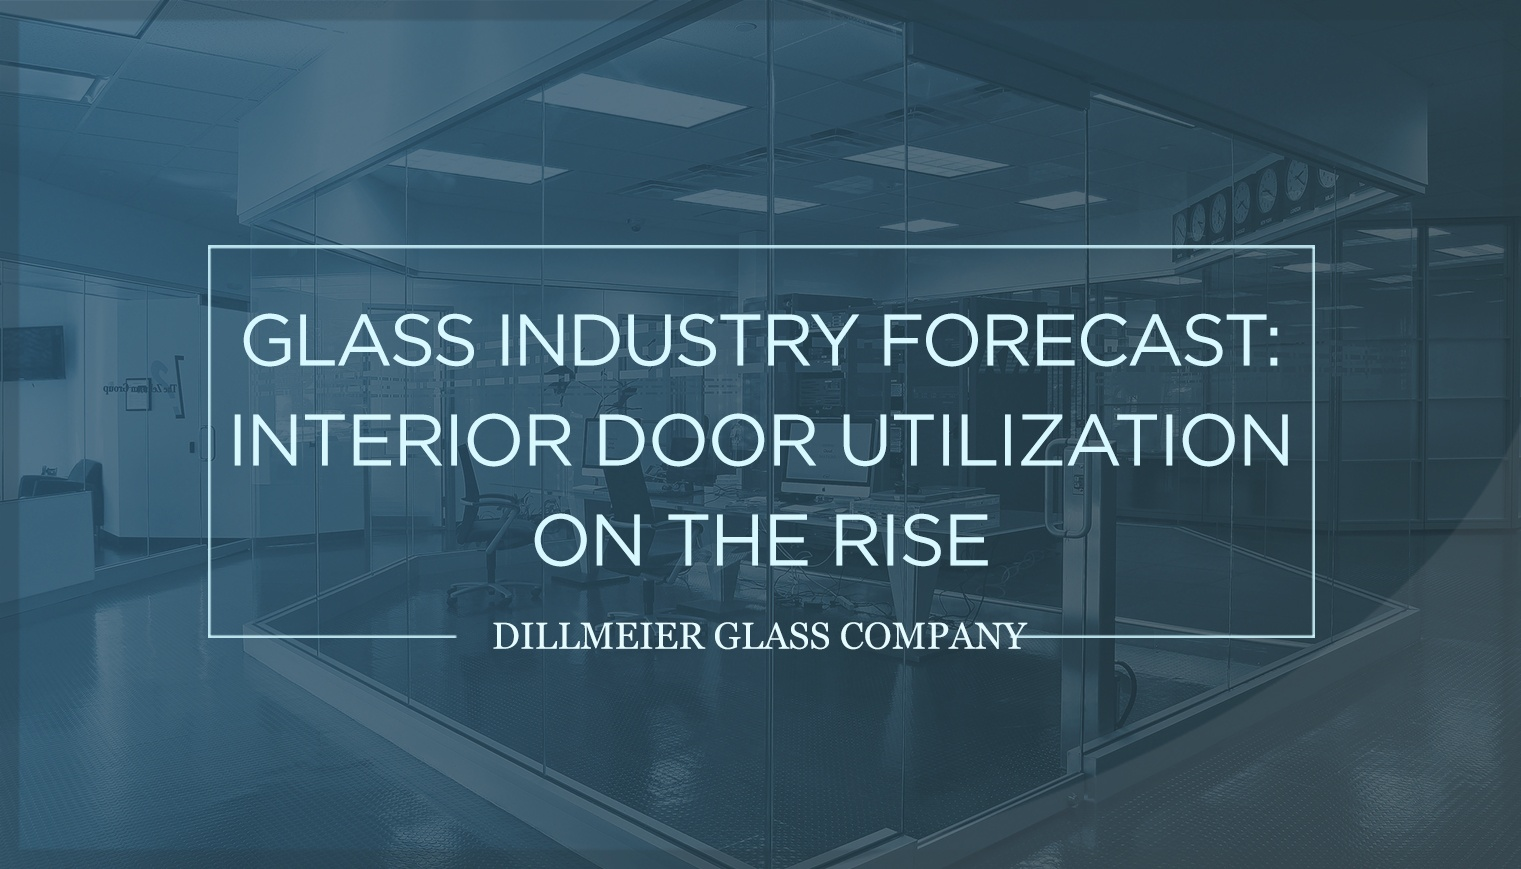 Glass Industry Forecast: Interior Door Utilization on the Rise